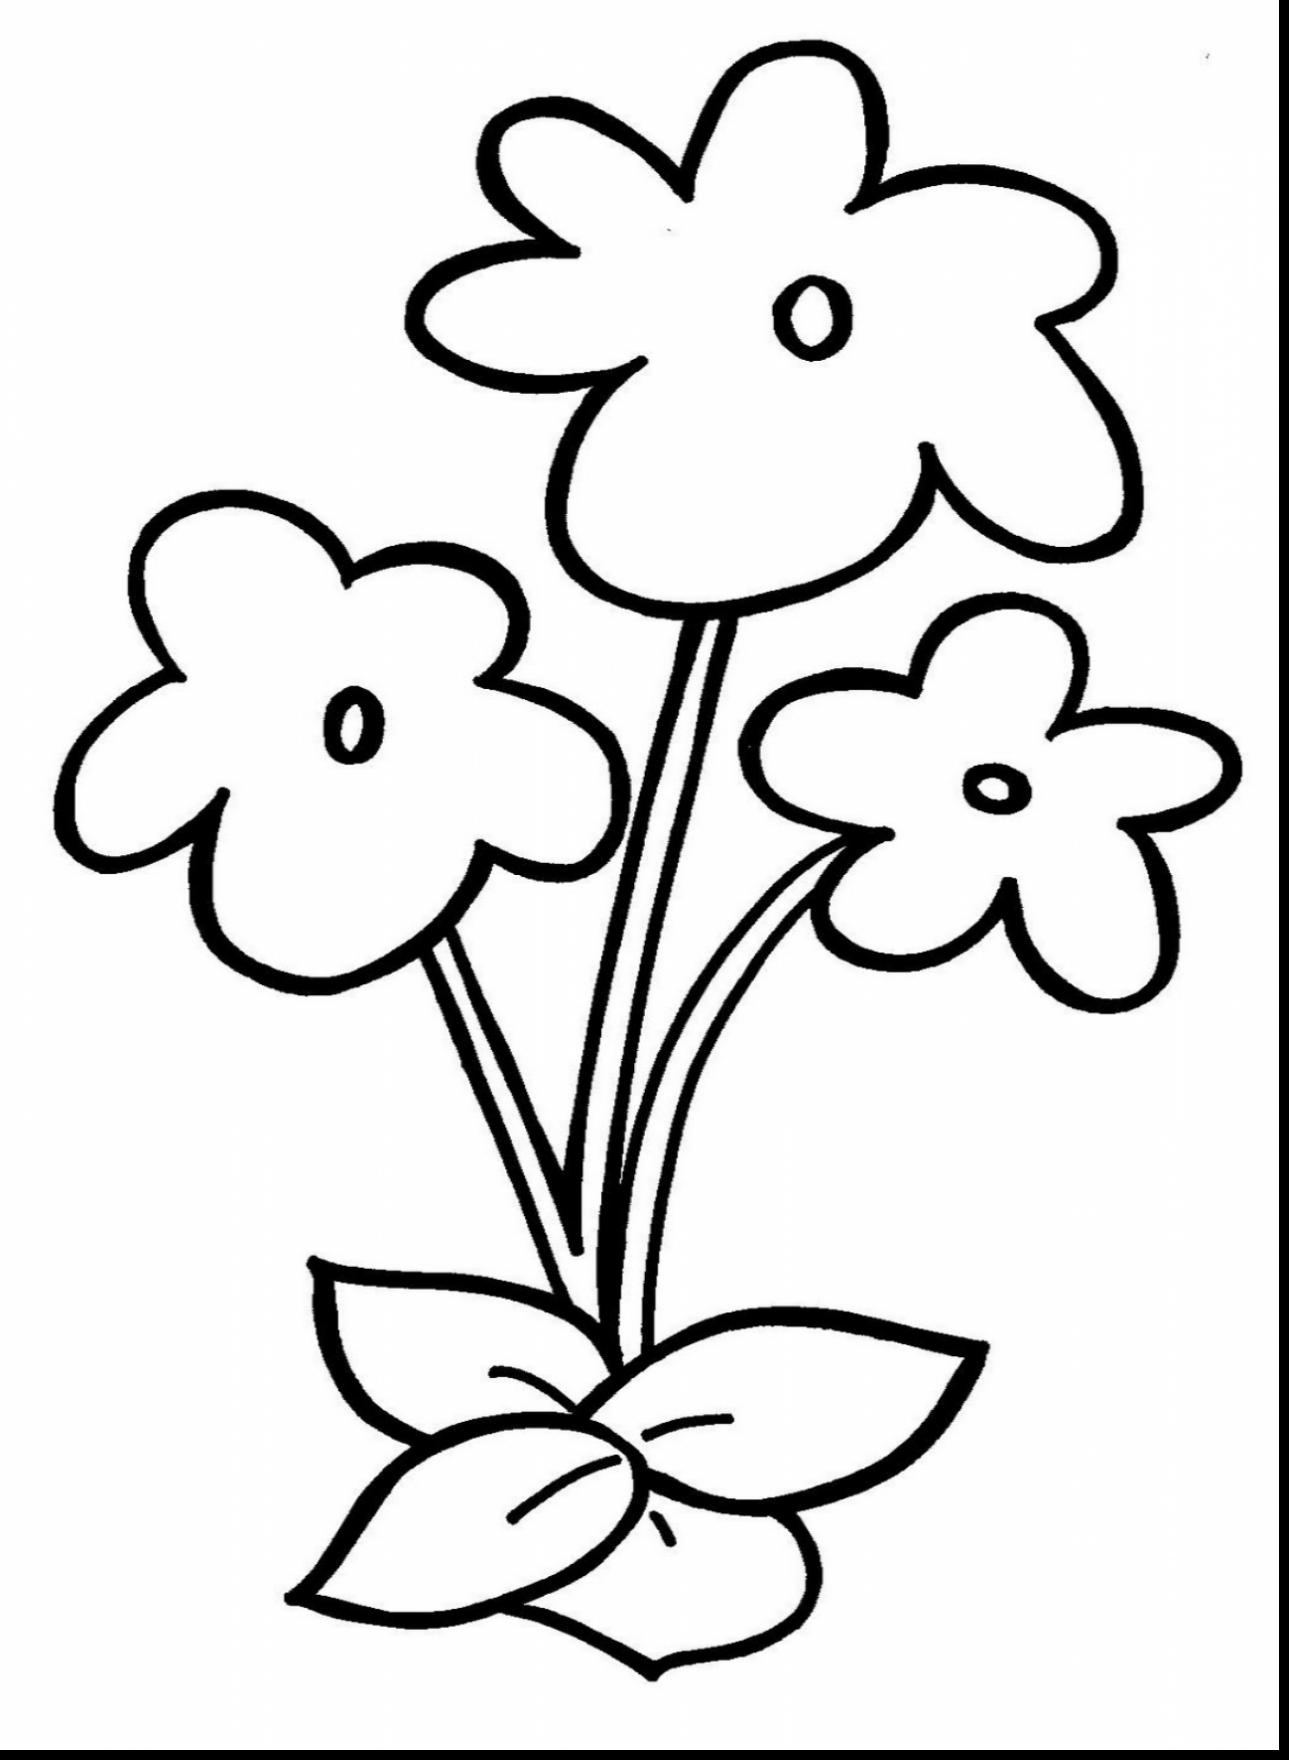 Simple Flower Coloring Pages At Getdrawings Free Download